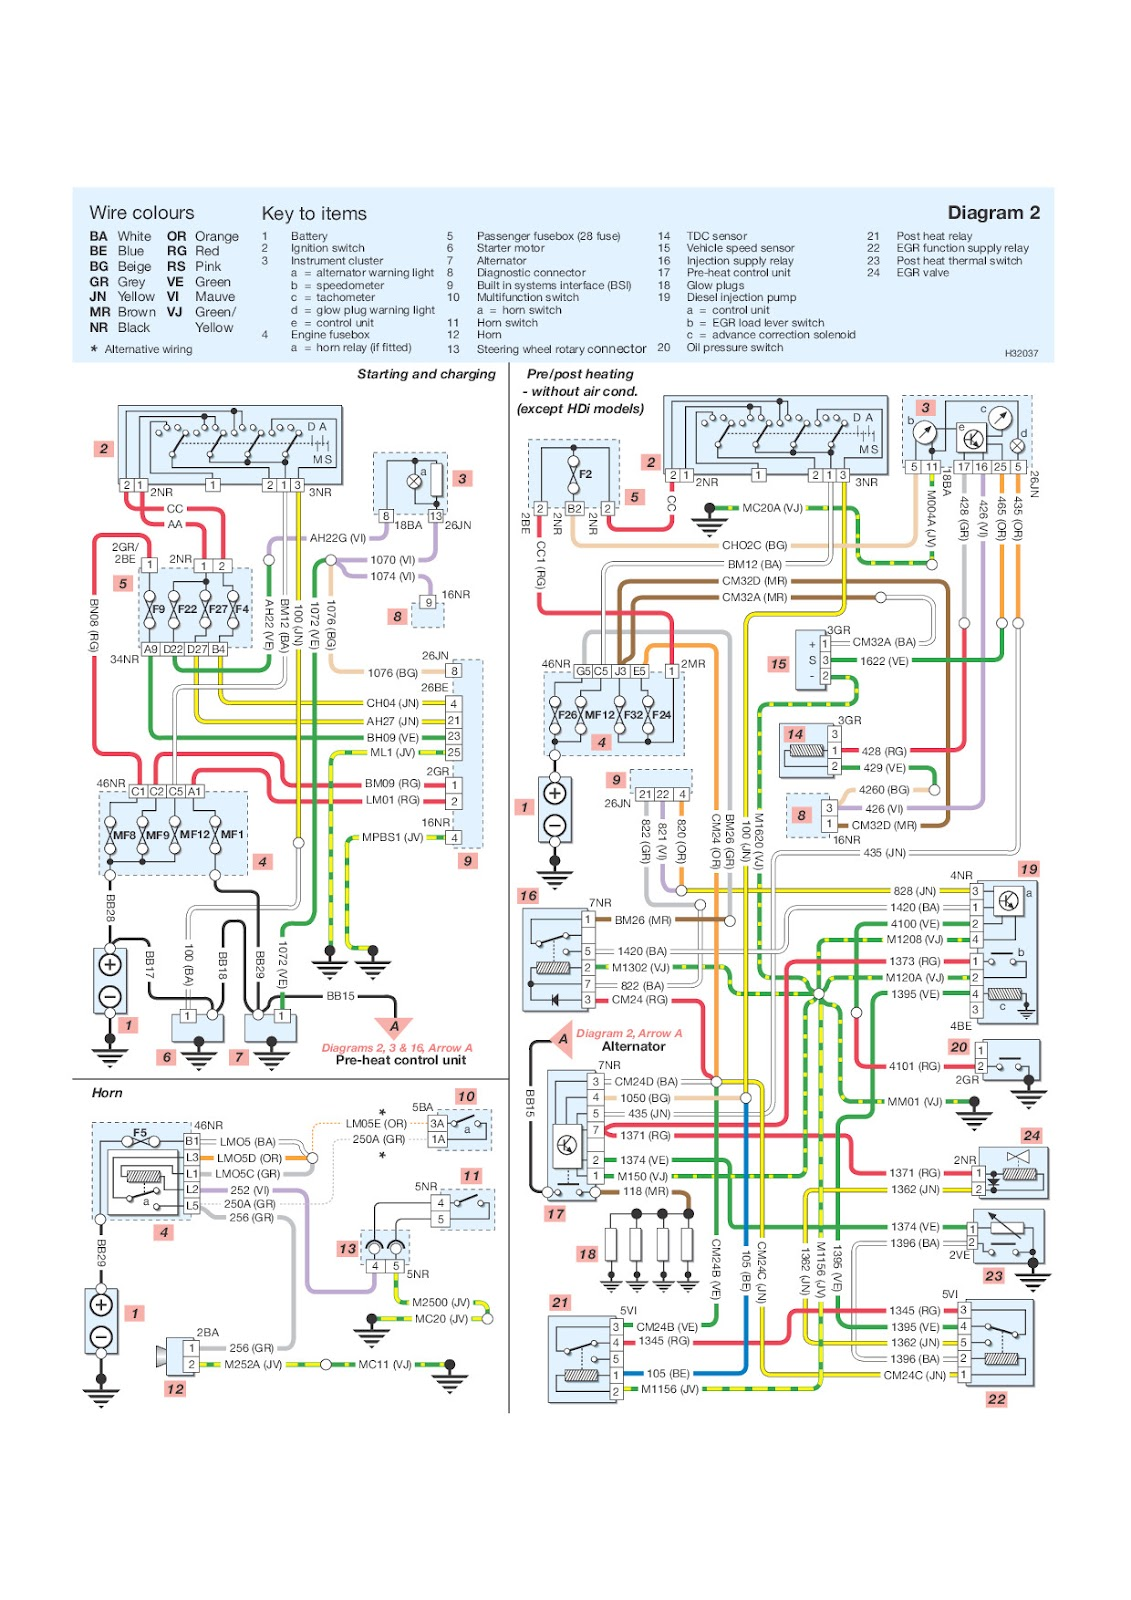 your wiring diagrams source peugeot 206 starting charging horn rh allwiringdiagrams blogspot com peugeot wiring diagrams peugeot 207 wiring diagram